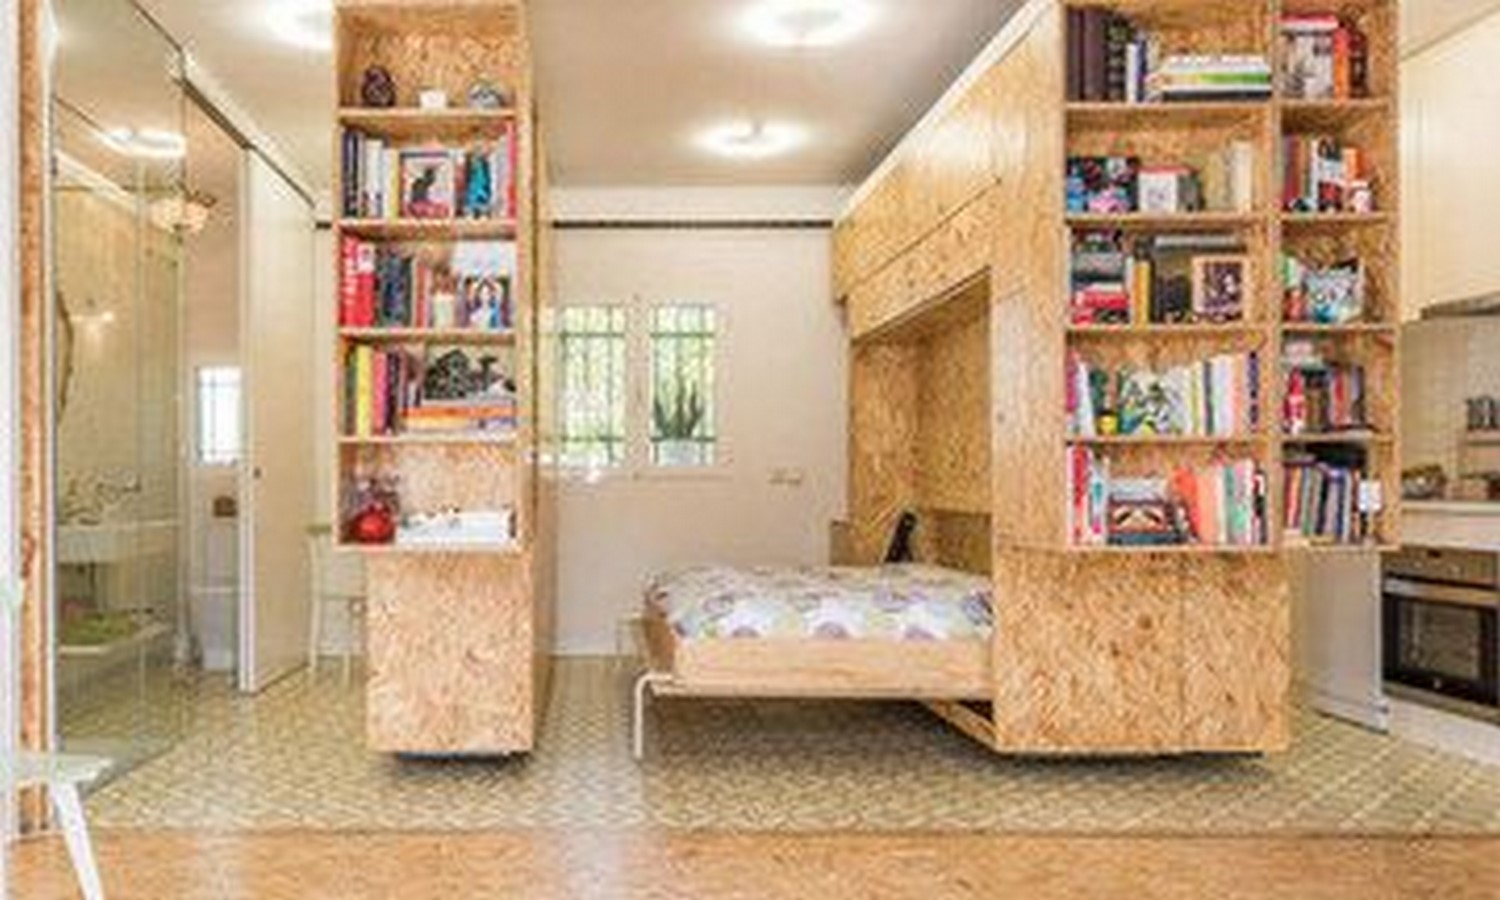 20 Trendy space saving solutions for tiny homes - Sheet9